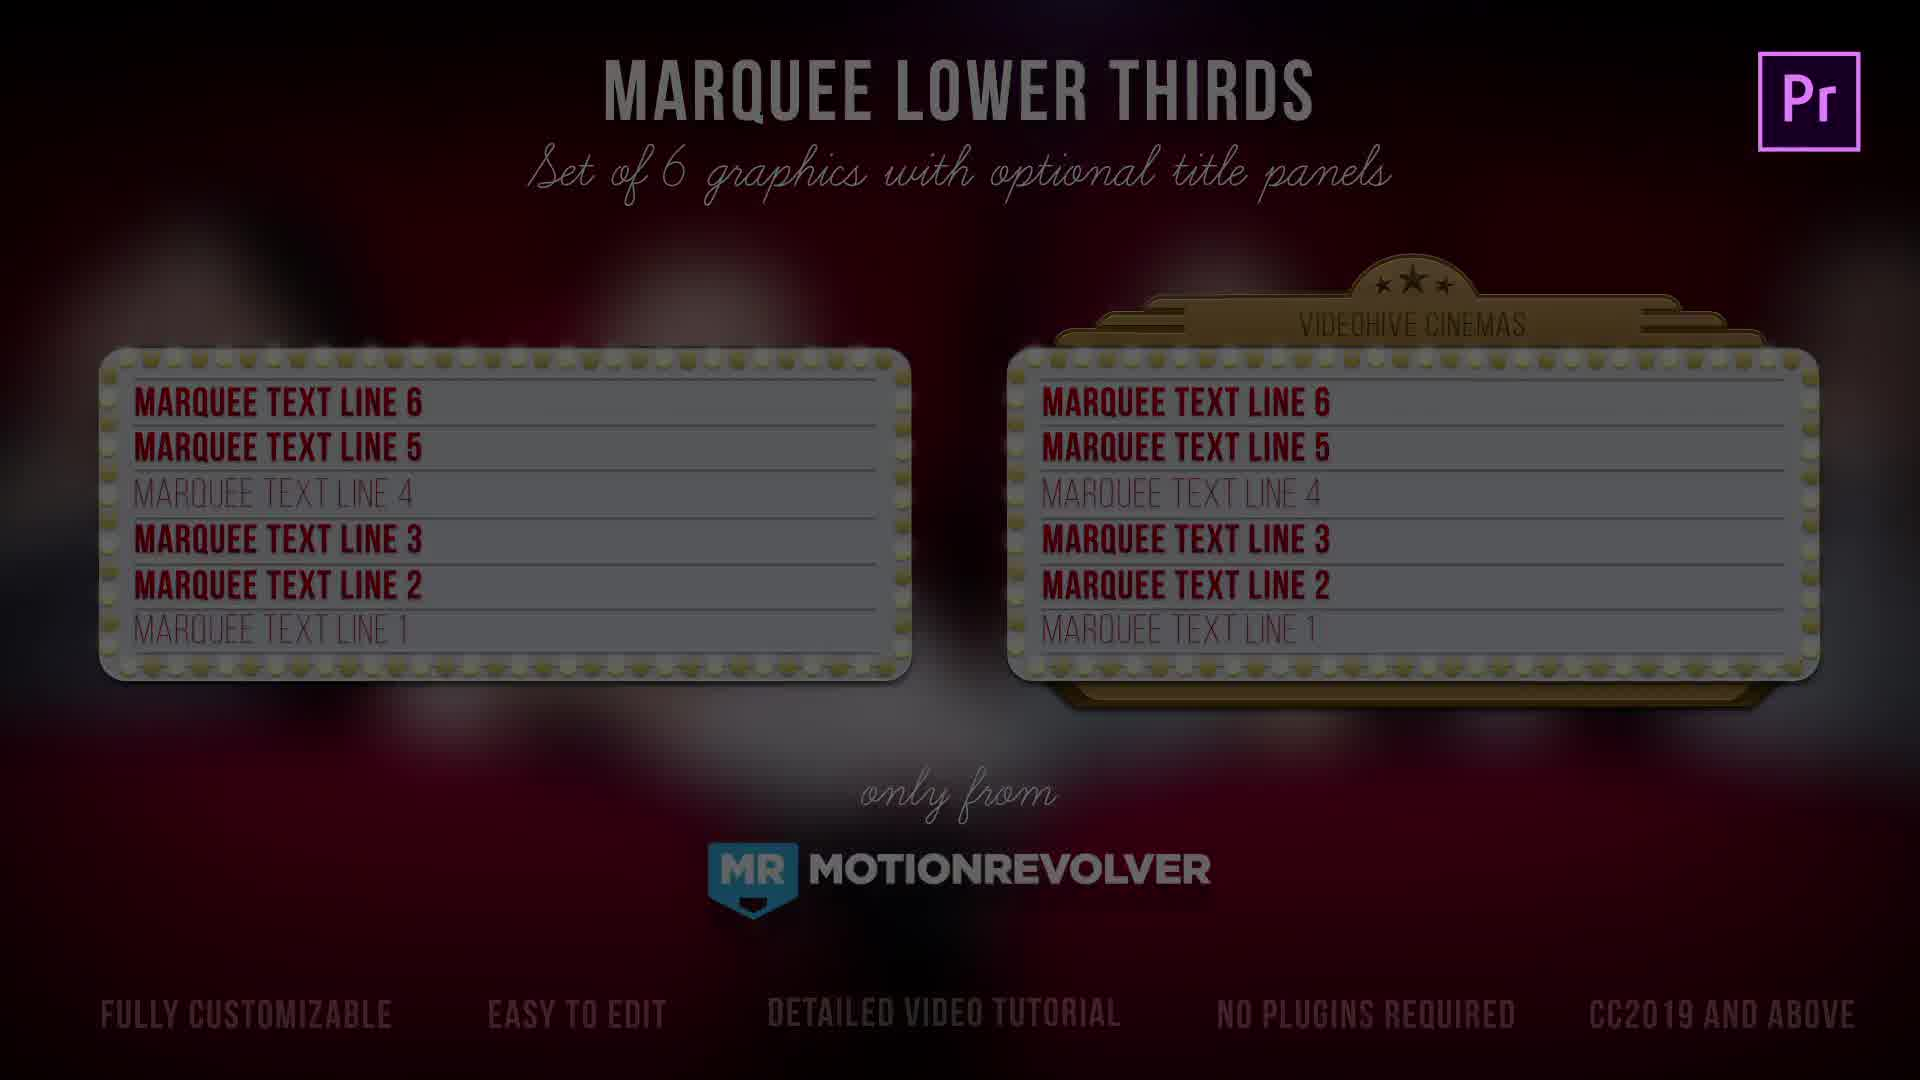 Marquee Lights Titles & Lower Thirds | MOGRT for Premiere Pro Videohive 24552539 Premiere Pro Image 10